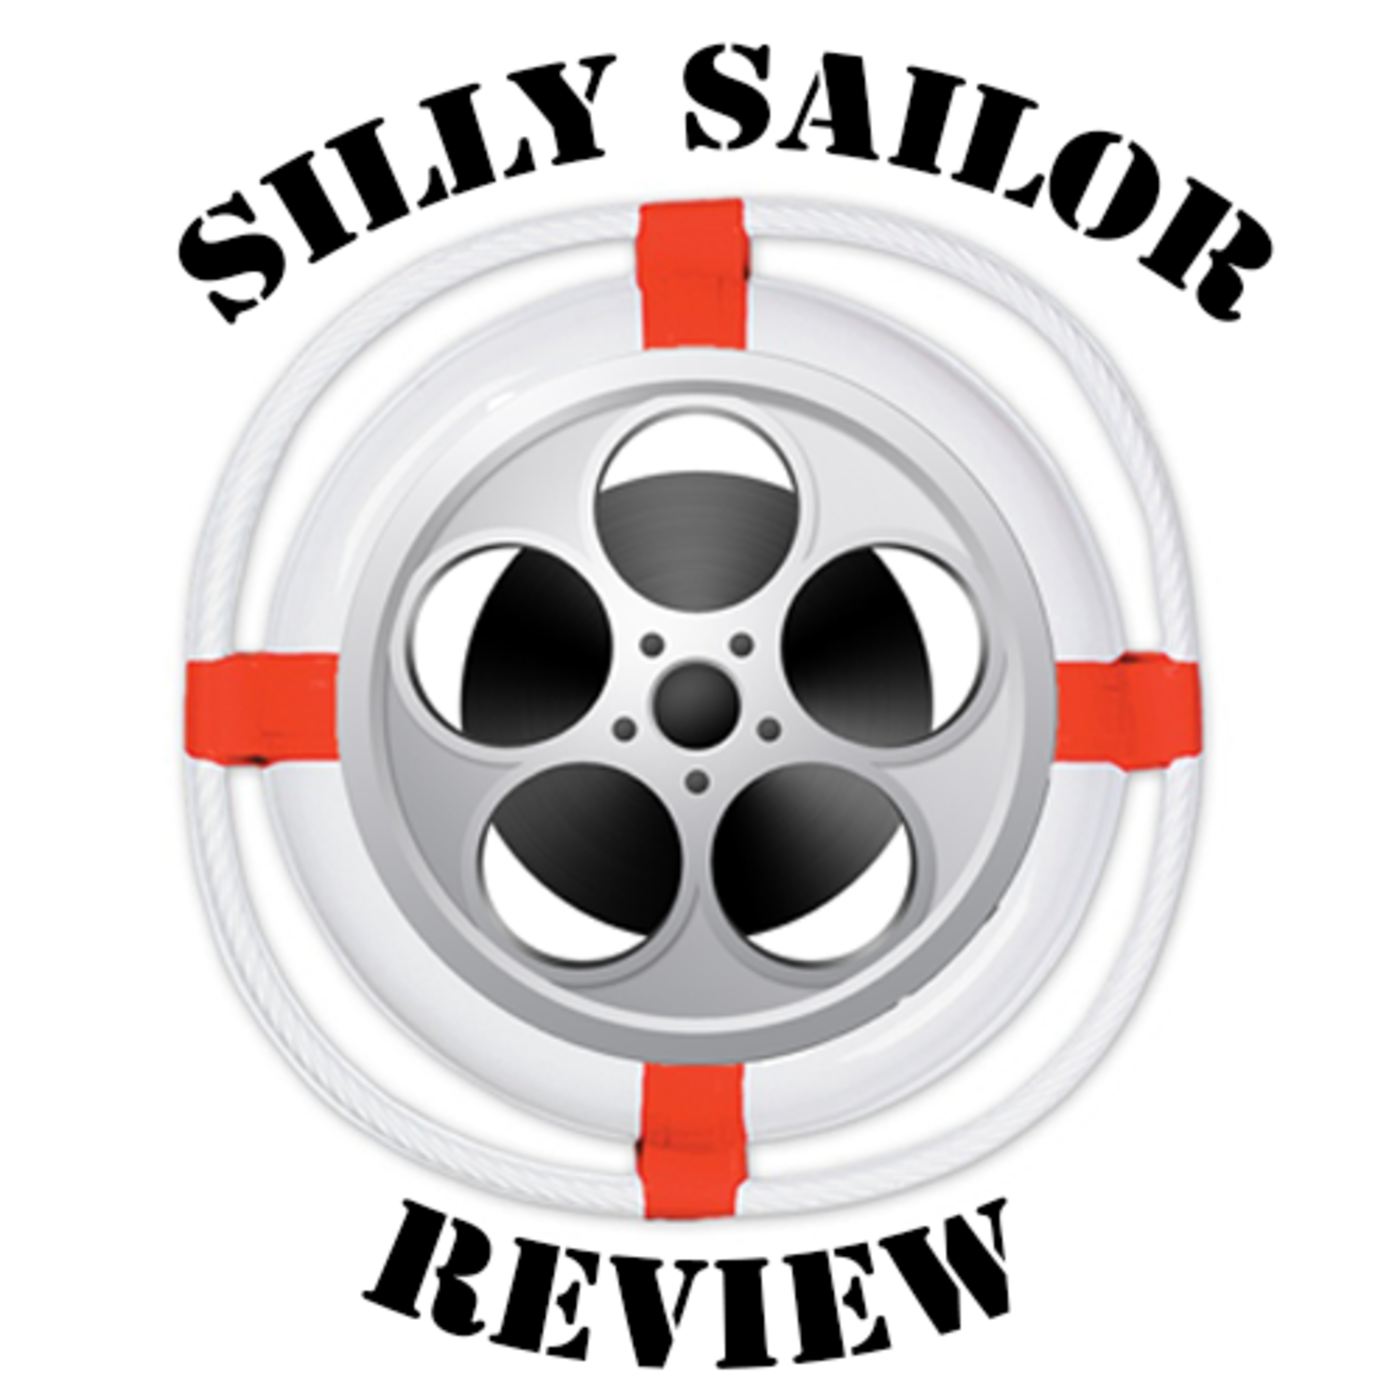 Silly Sailor Reviews